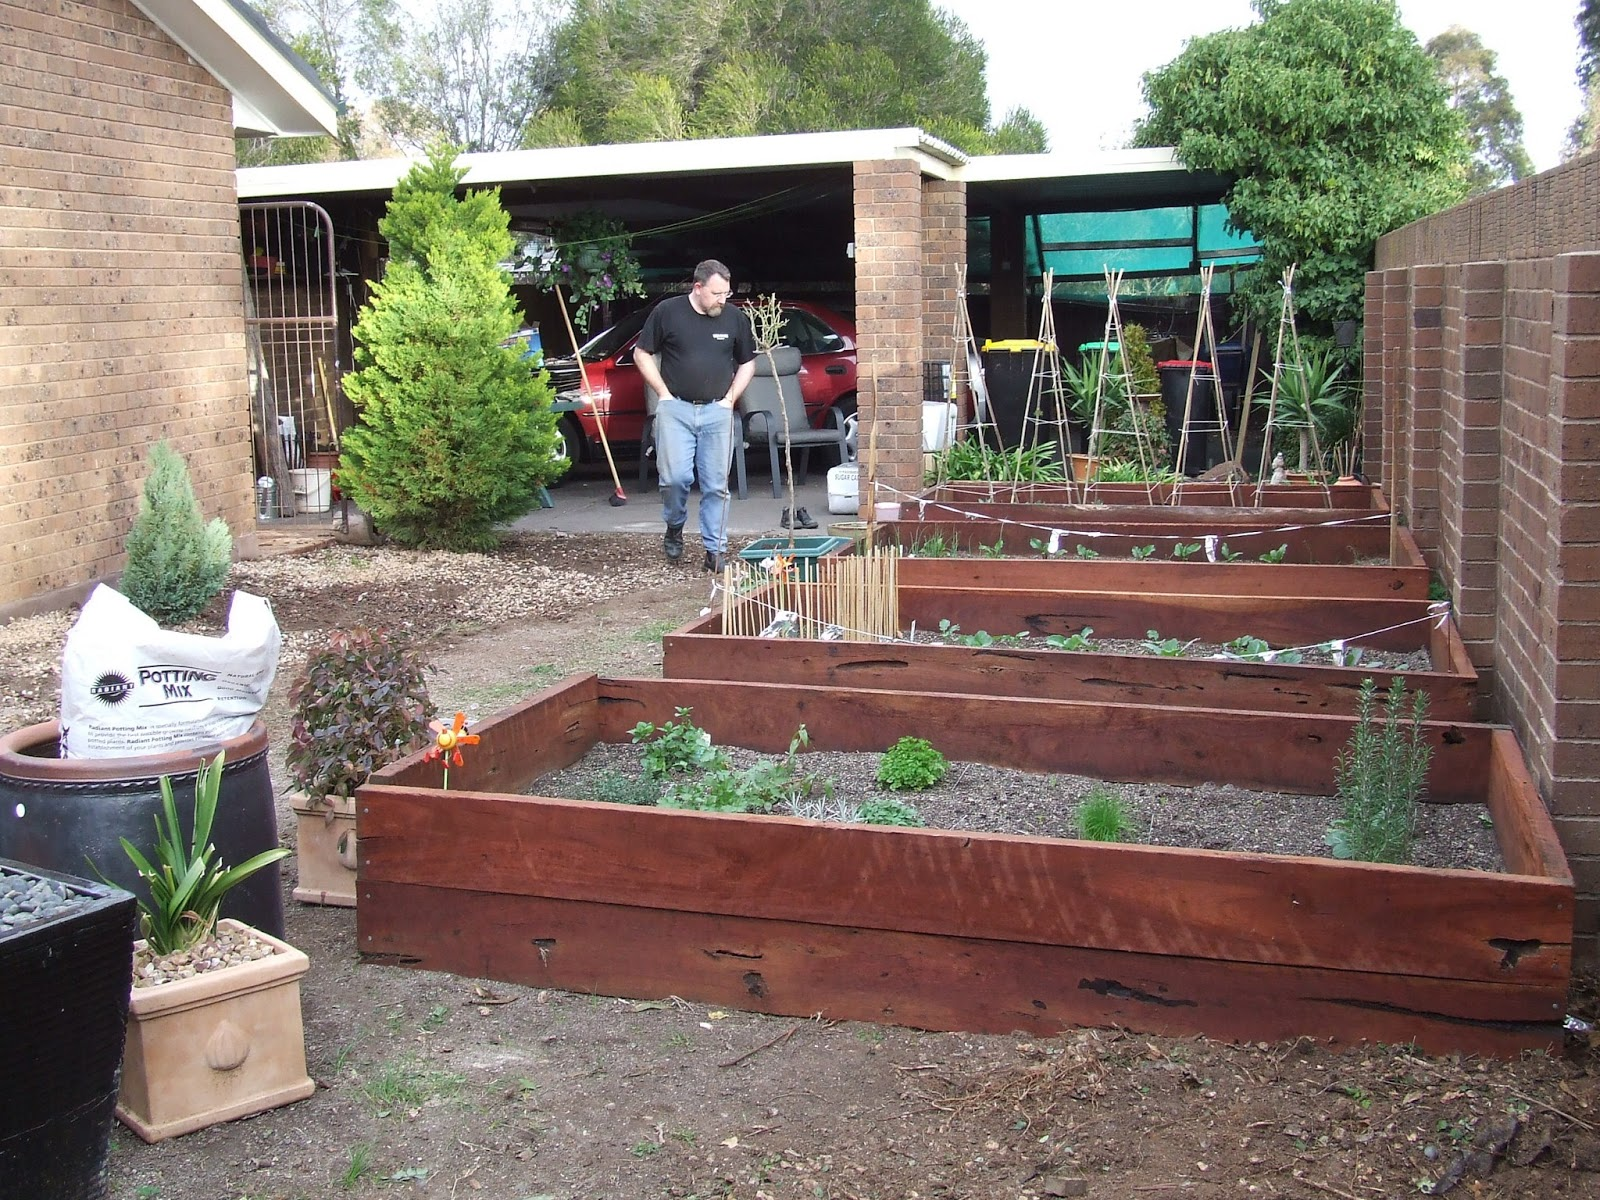 How To Make Raised Garden Beds For Vegetables The Greening of Gavin